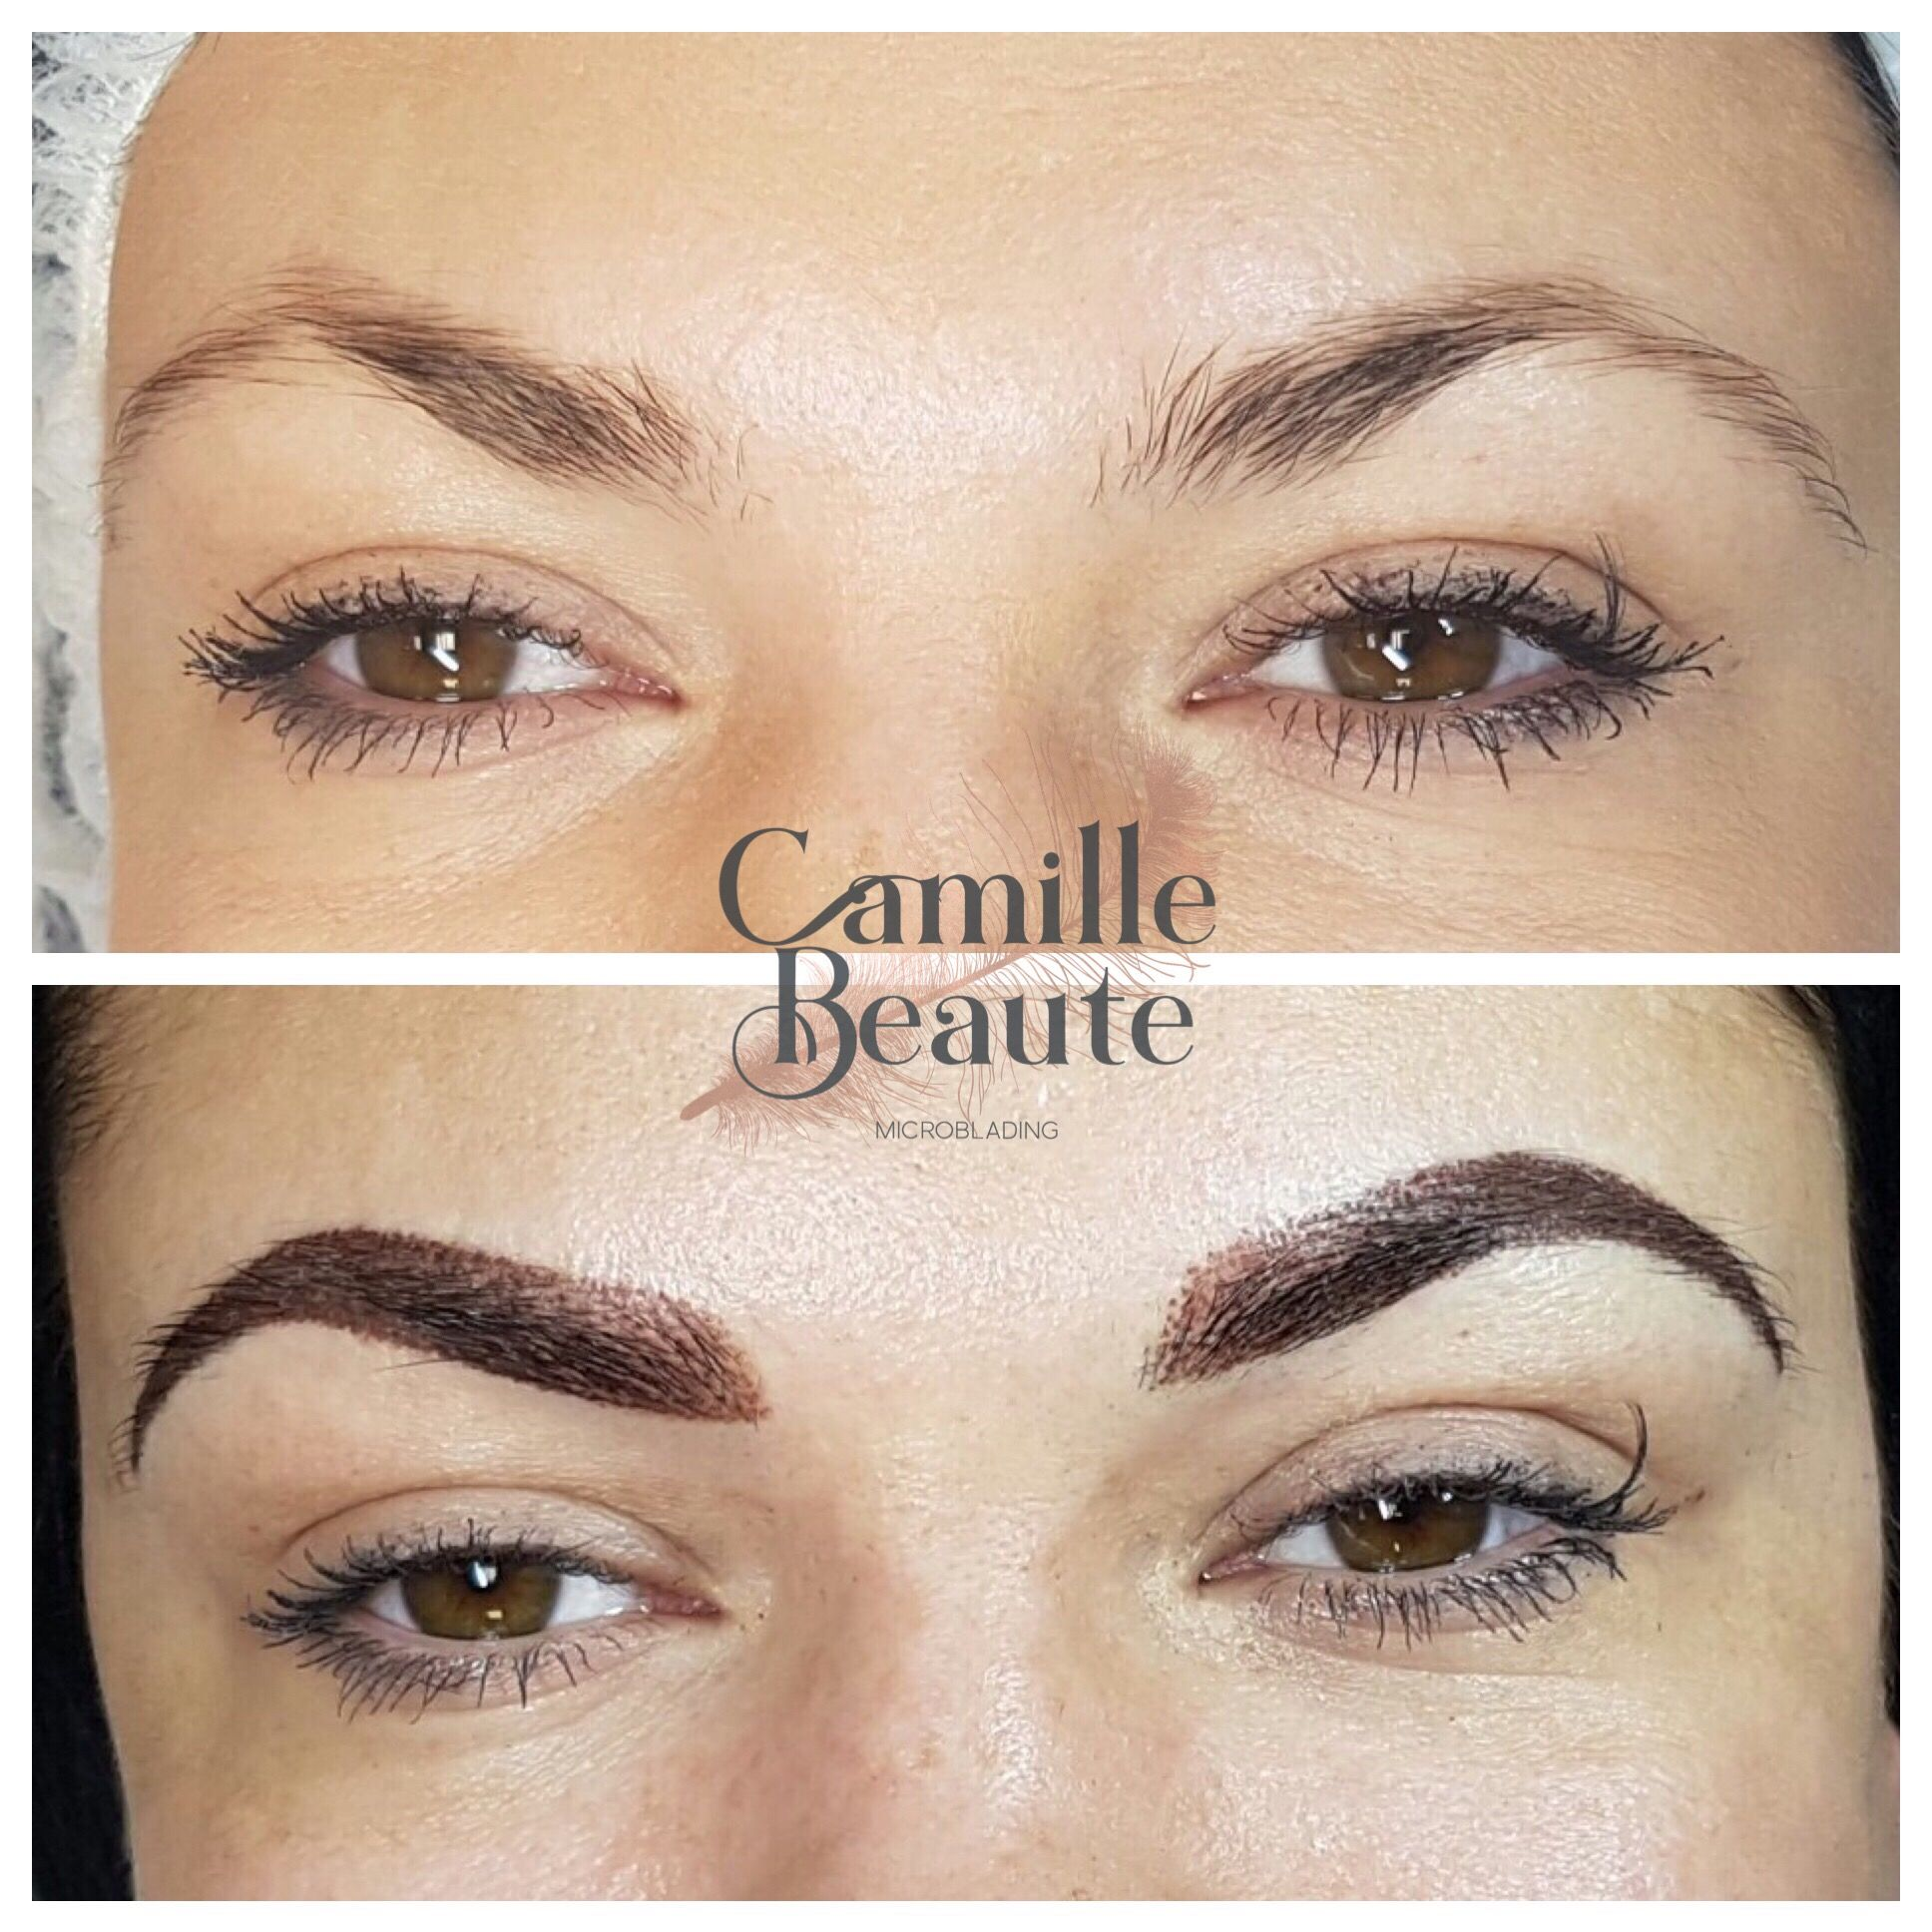 Pin by Camille Beaute on Microblading/semipermanent make